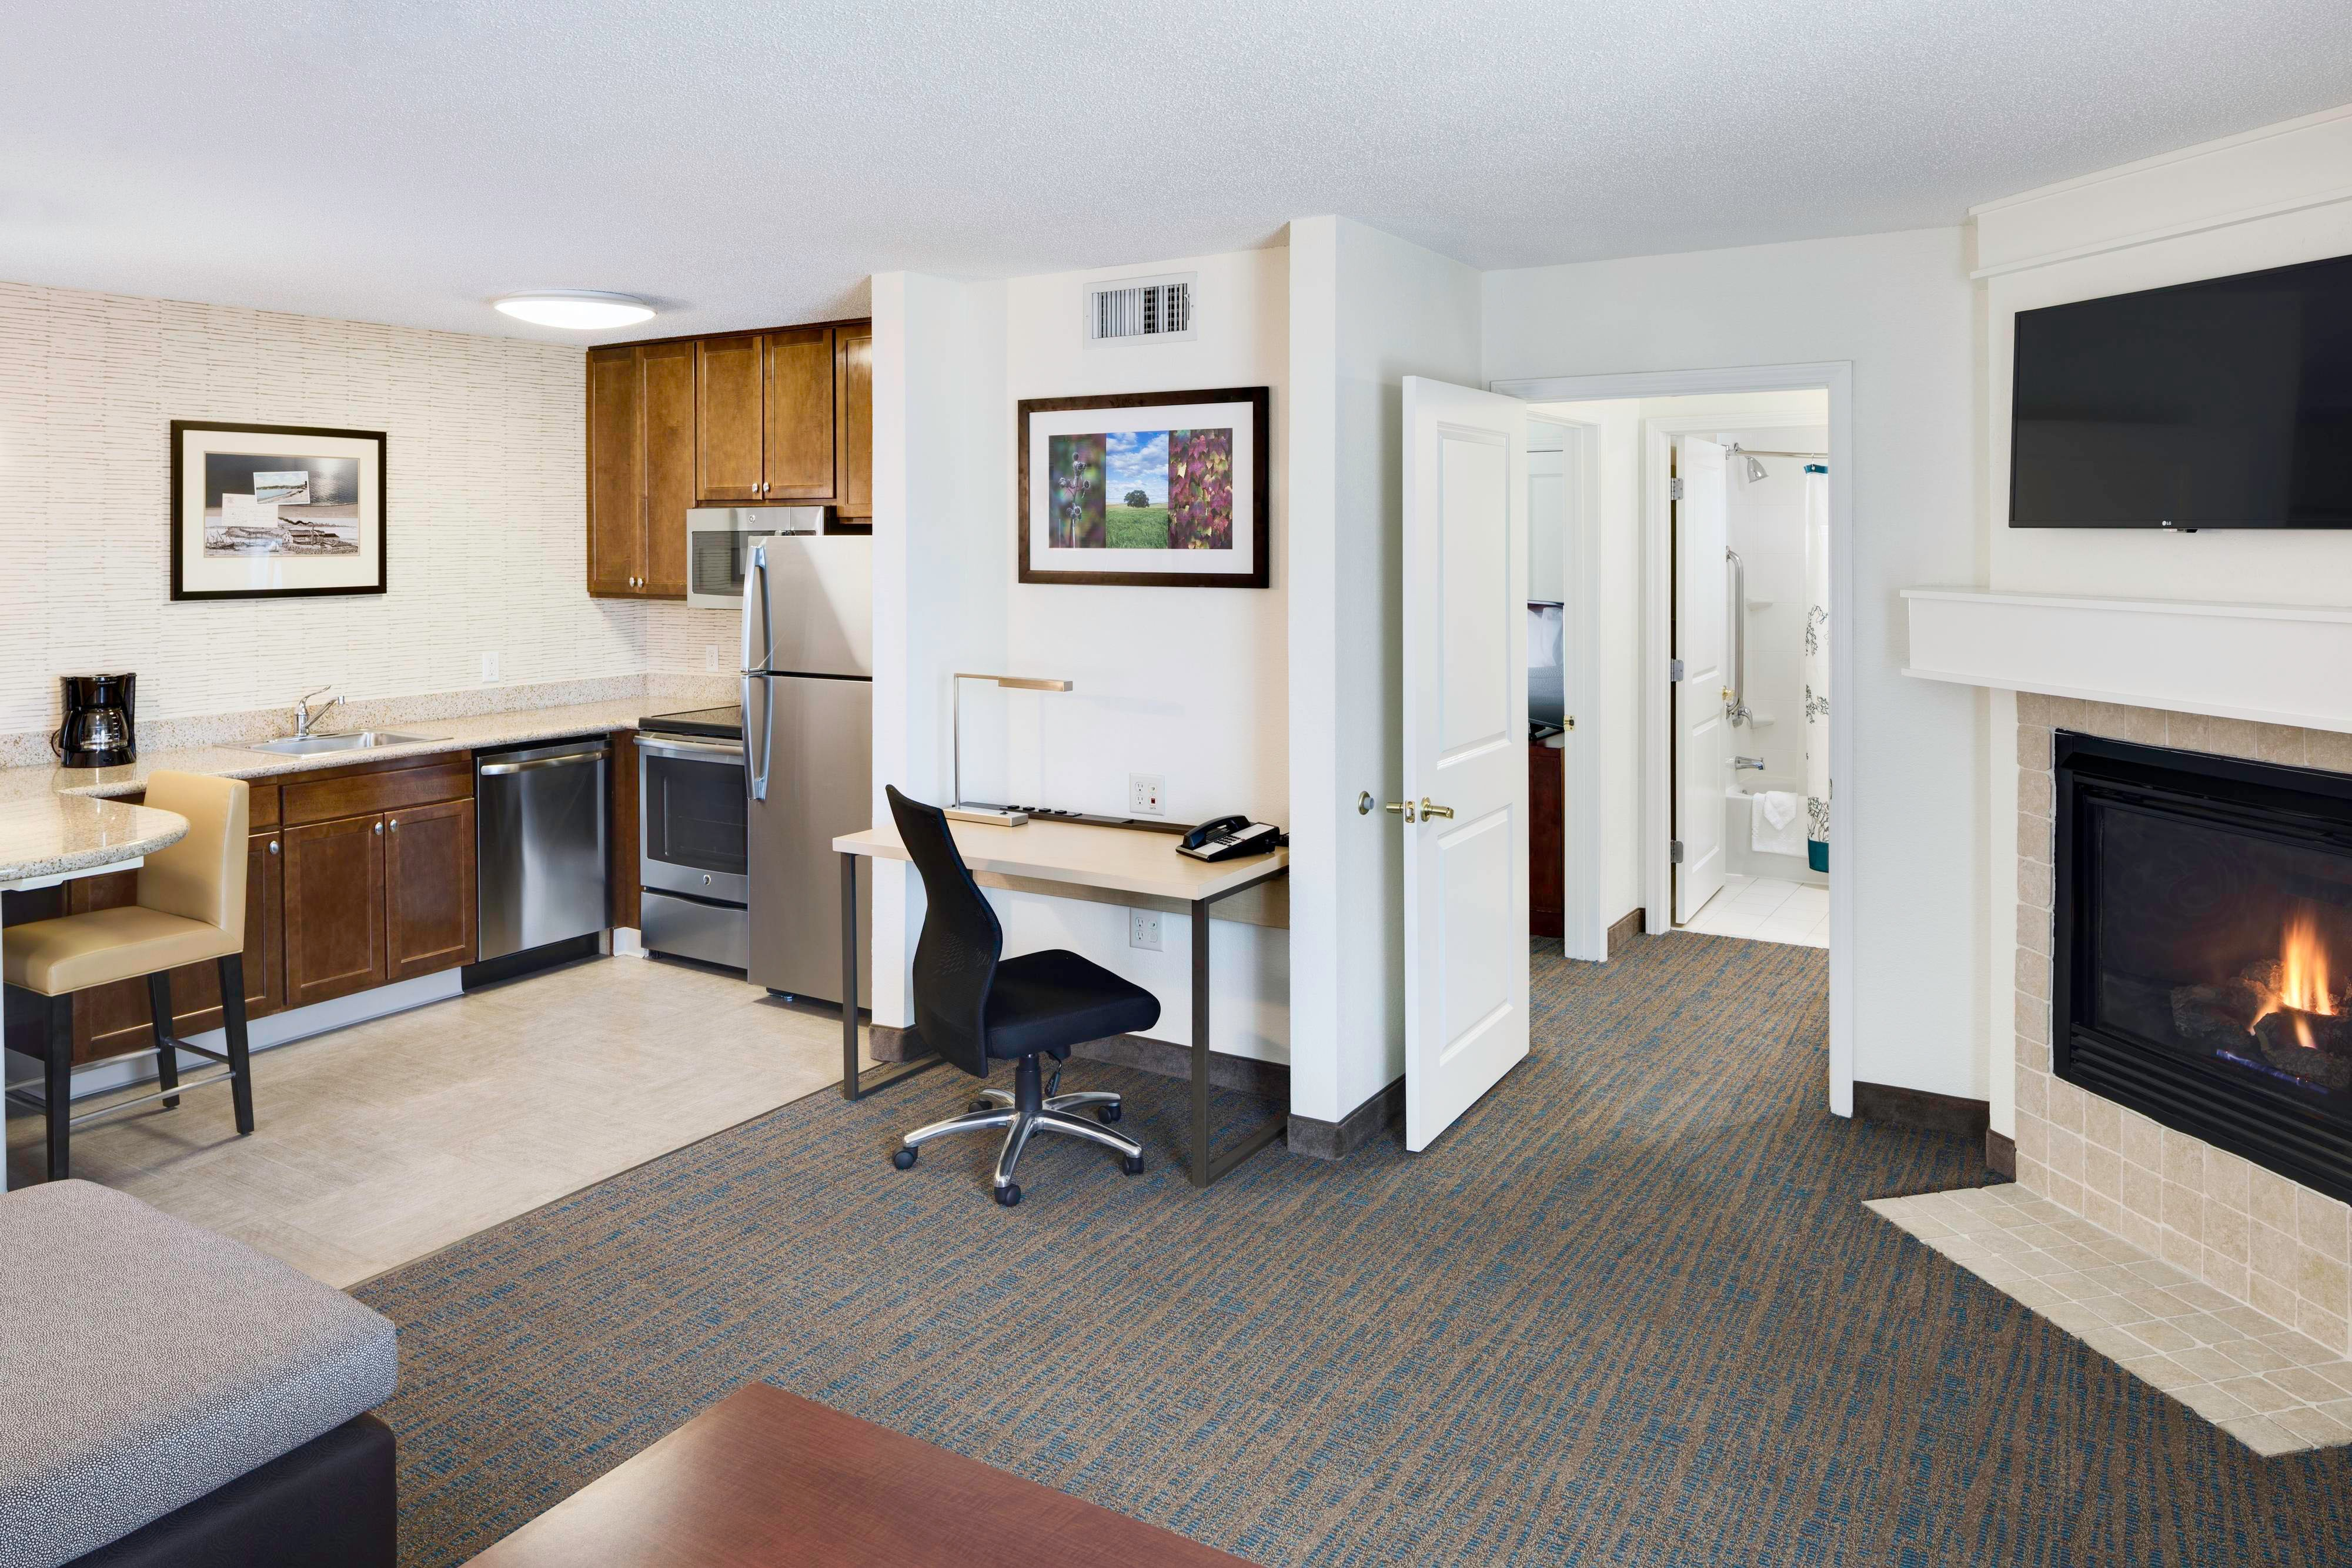 Residence Inn Milford, CT, Renovated Extended stay hotel, Milford, CT